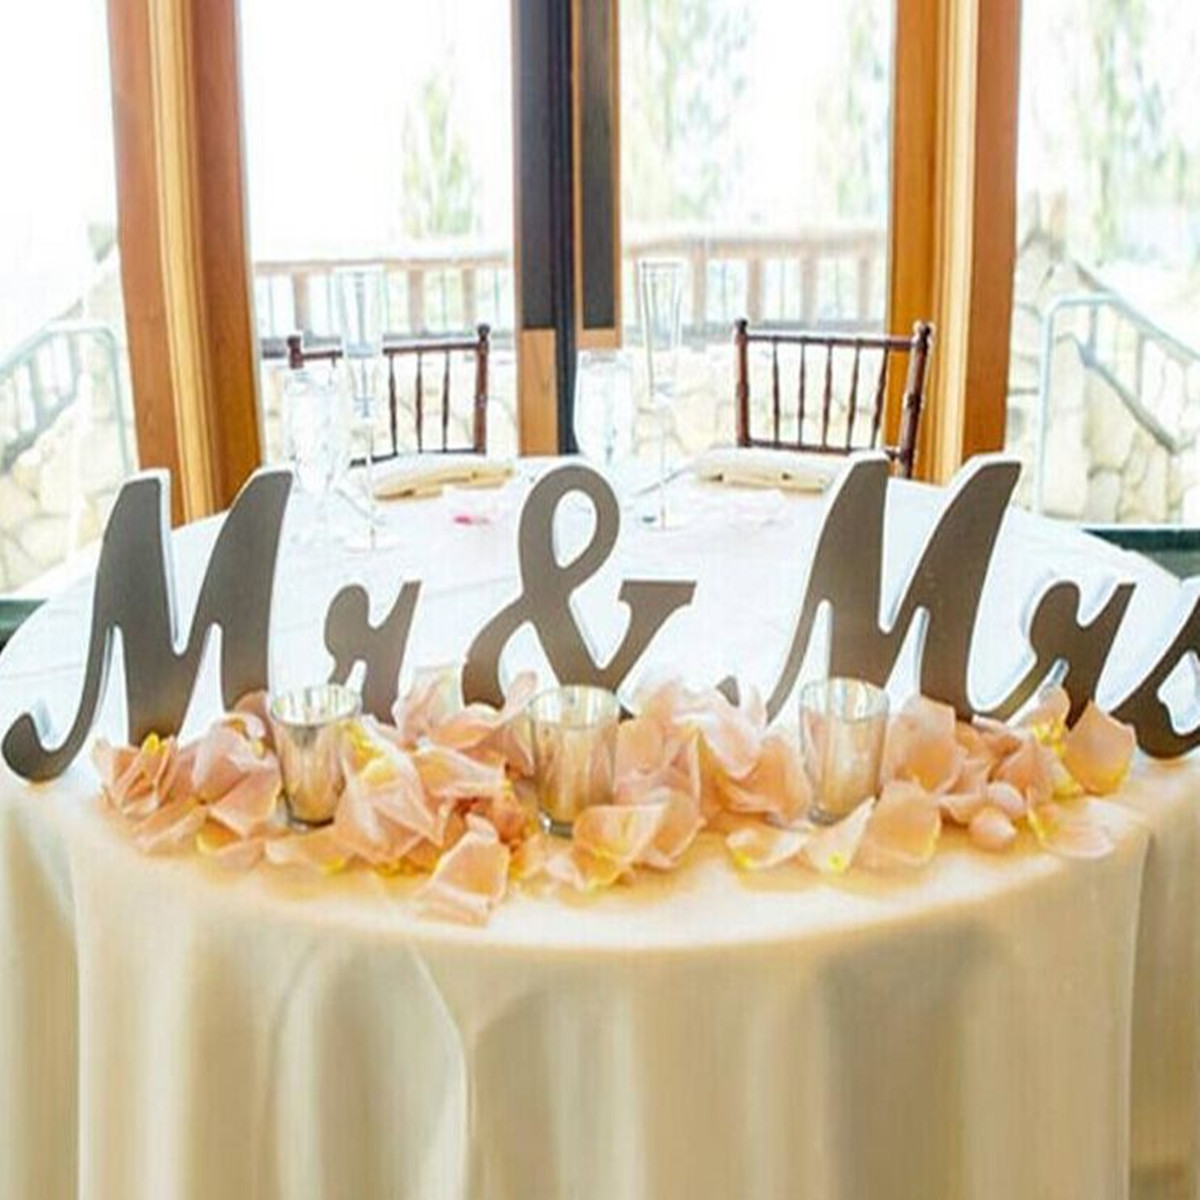 Mr and mrs sign wedding table decorationsmr and mrs letters mr and mrs sign wedding table decorationsmr and mrs letters decorative letters for wedding photo props party banner decorationwedding shower gift junglespirit Image collections